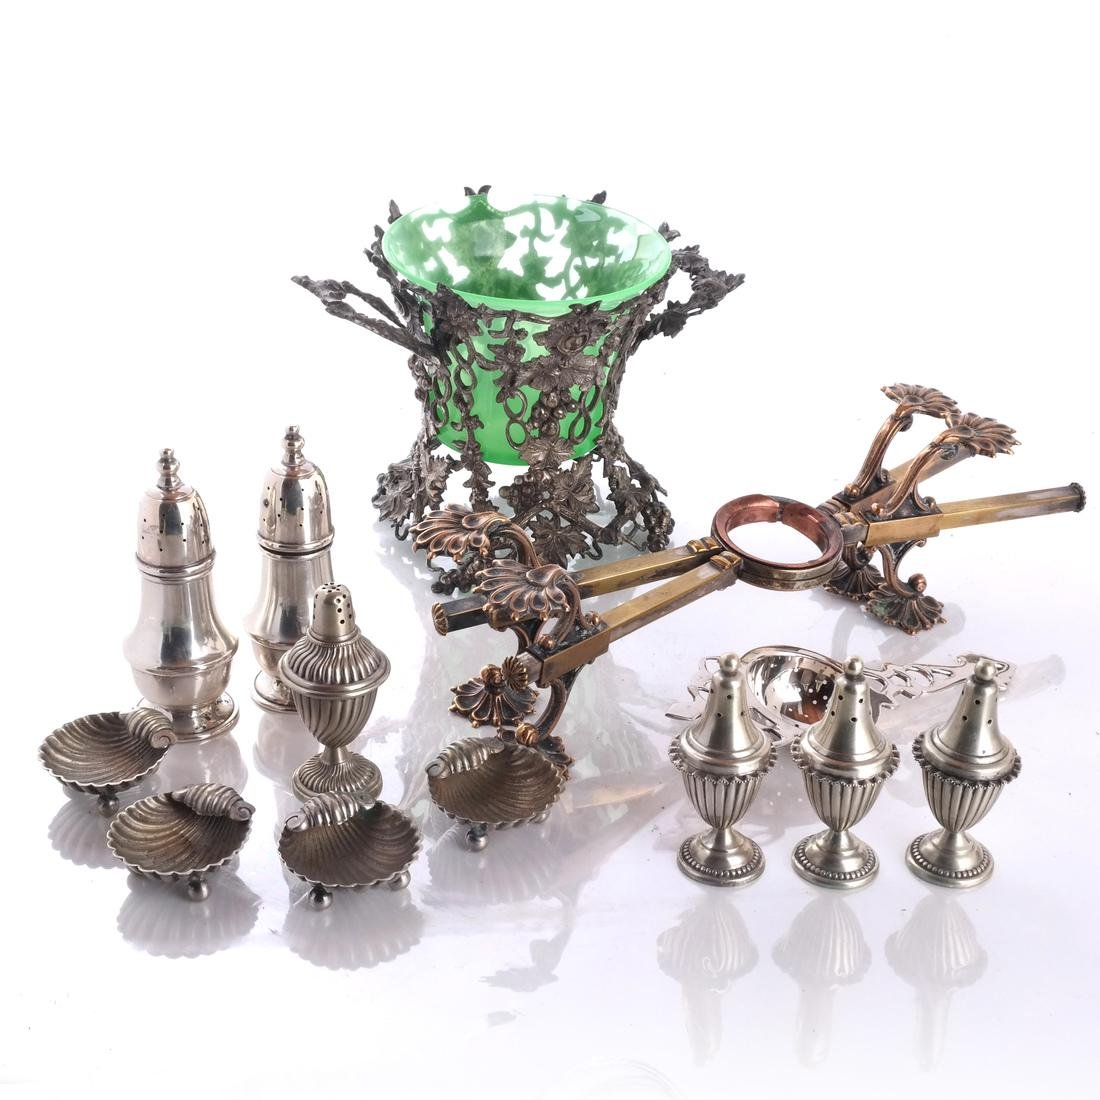 Metalware and Silver Plate, Others (13)